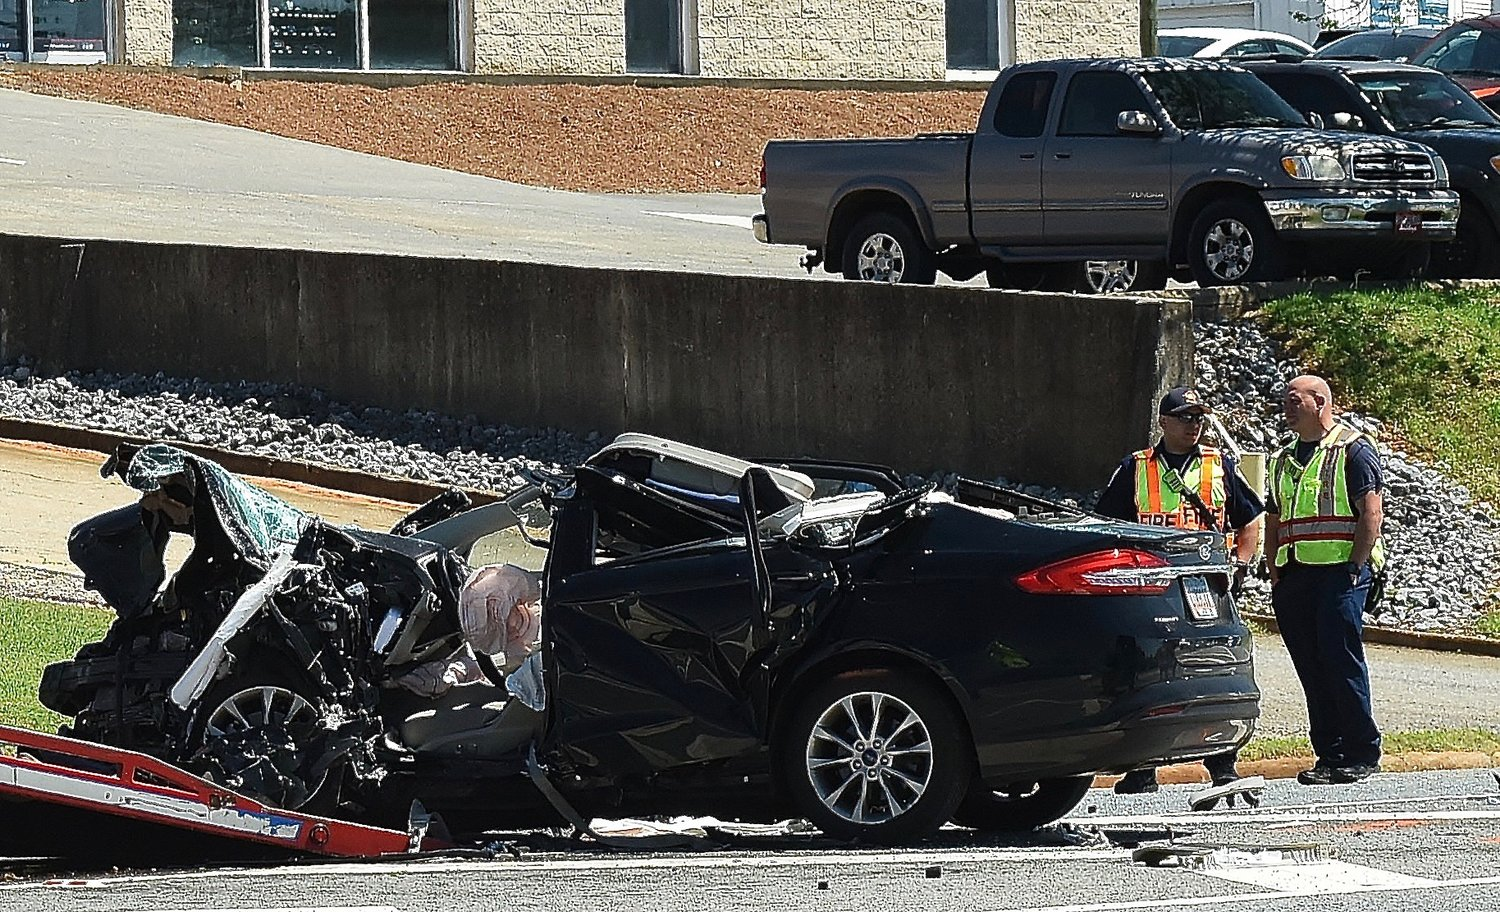 A two-car, head-on collision at the intersection of Joe Frank Harris Parkway and Collins Drive in Cartersville early Monday afternoon resulted in the death of a 52-year-old Cartersville woman and the airlifting of the other driver to Grady Memorial Hospital.